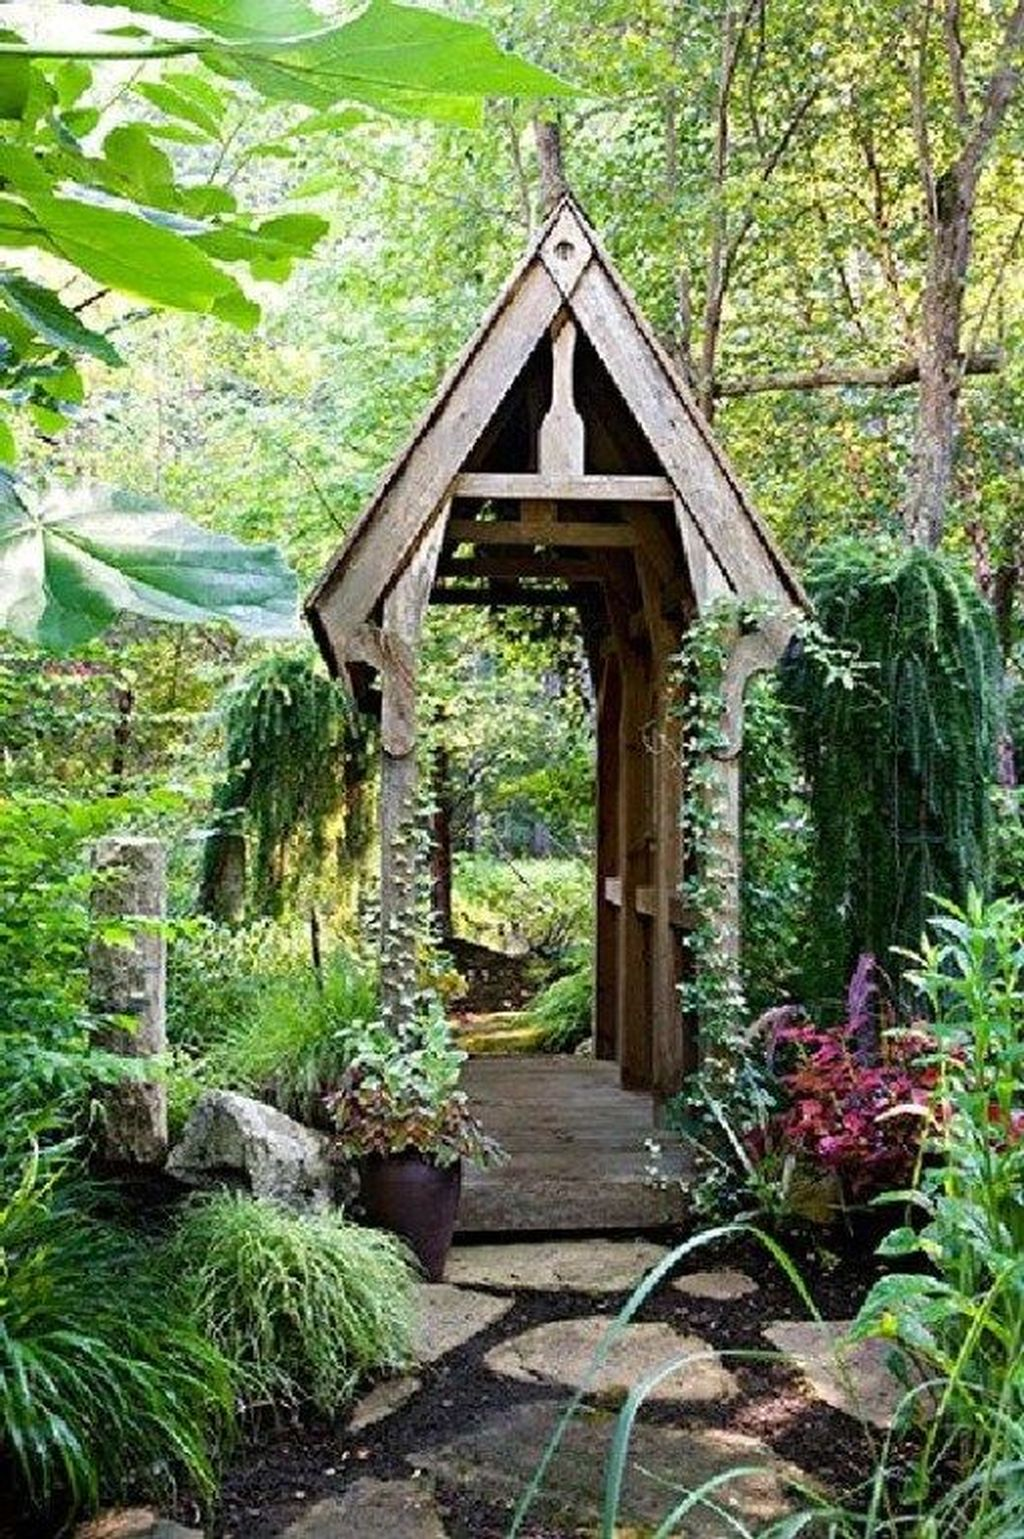 Incredible Magical Backyard Design Ideas For Your Kids 16